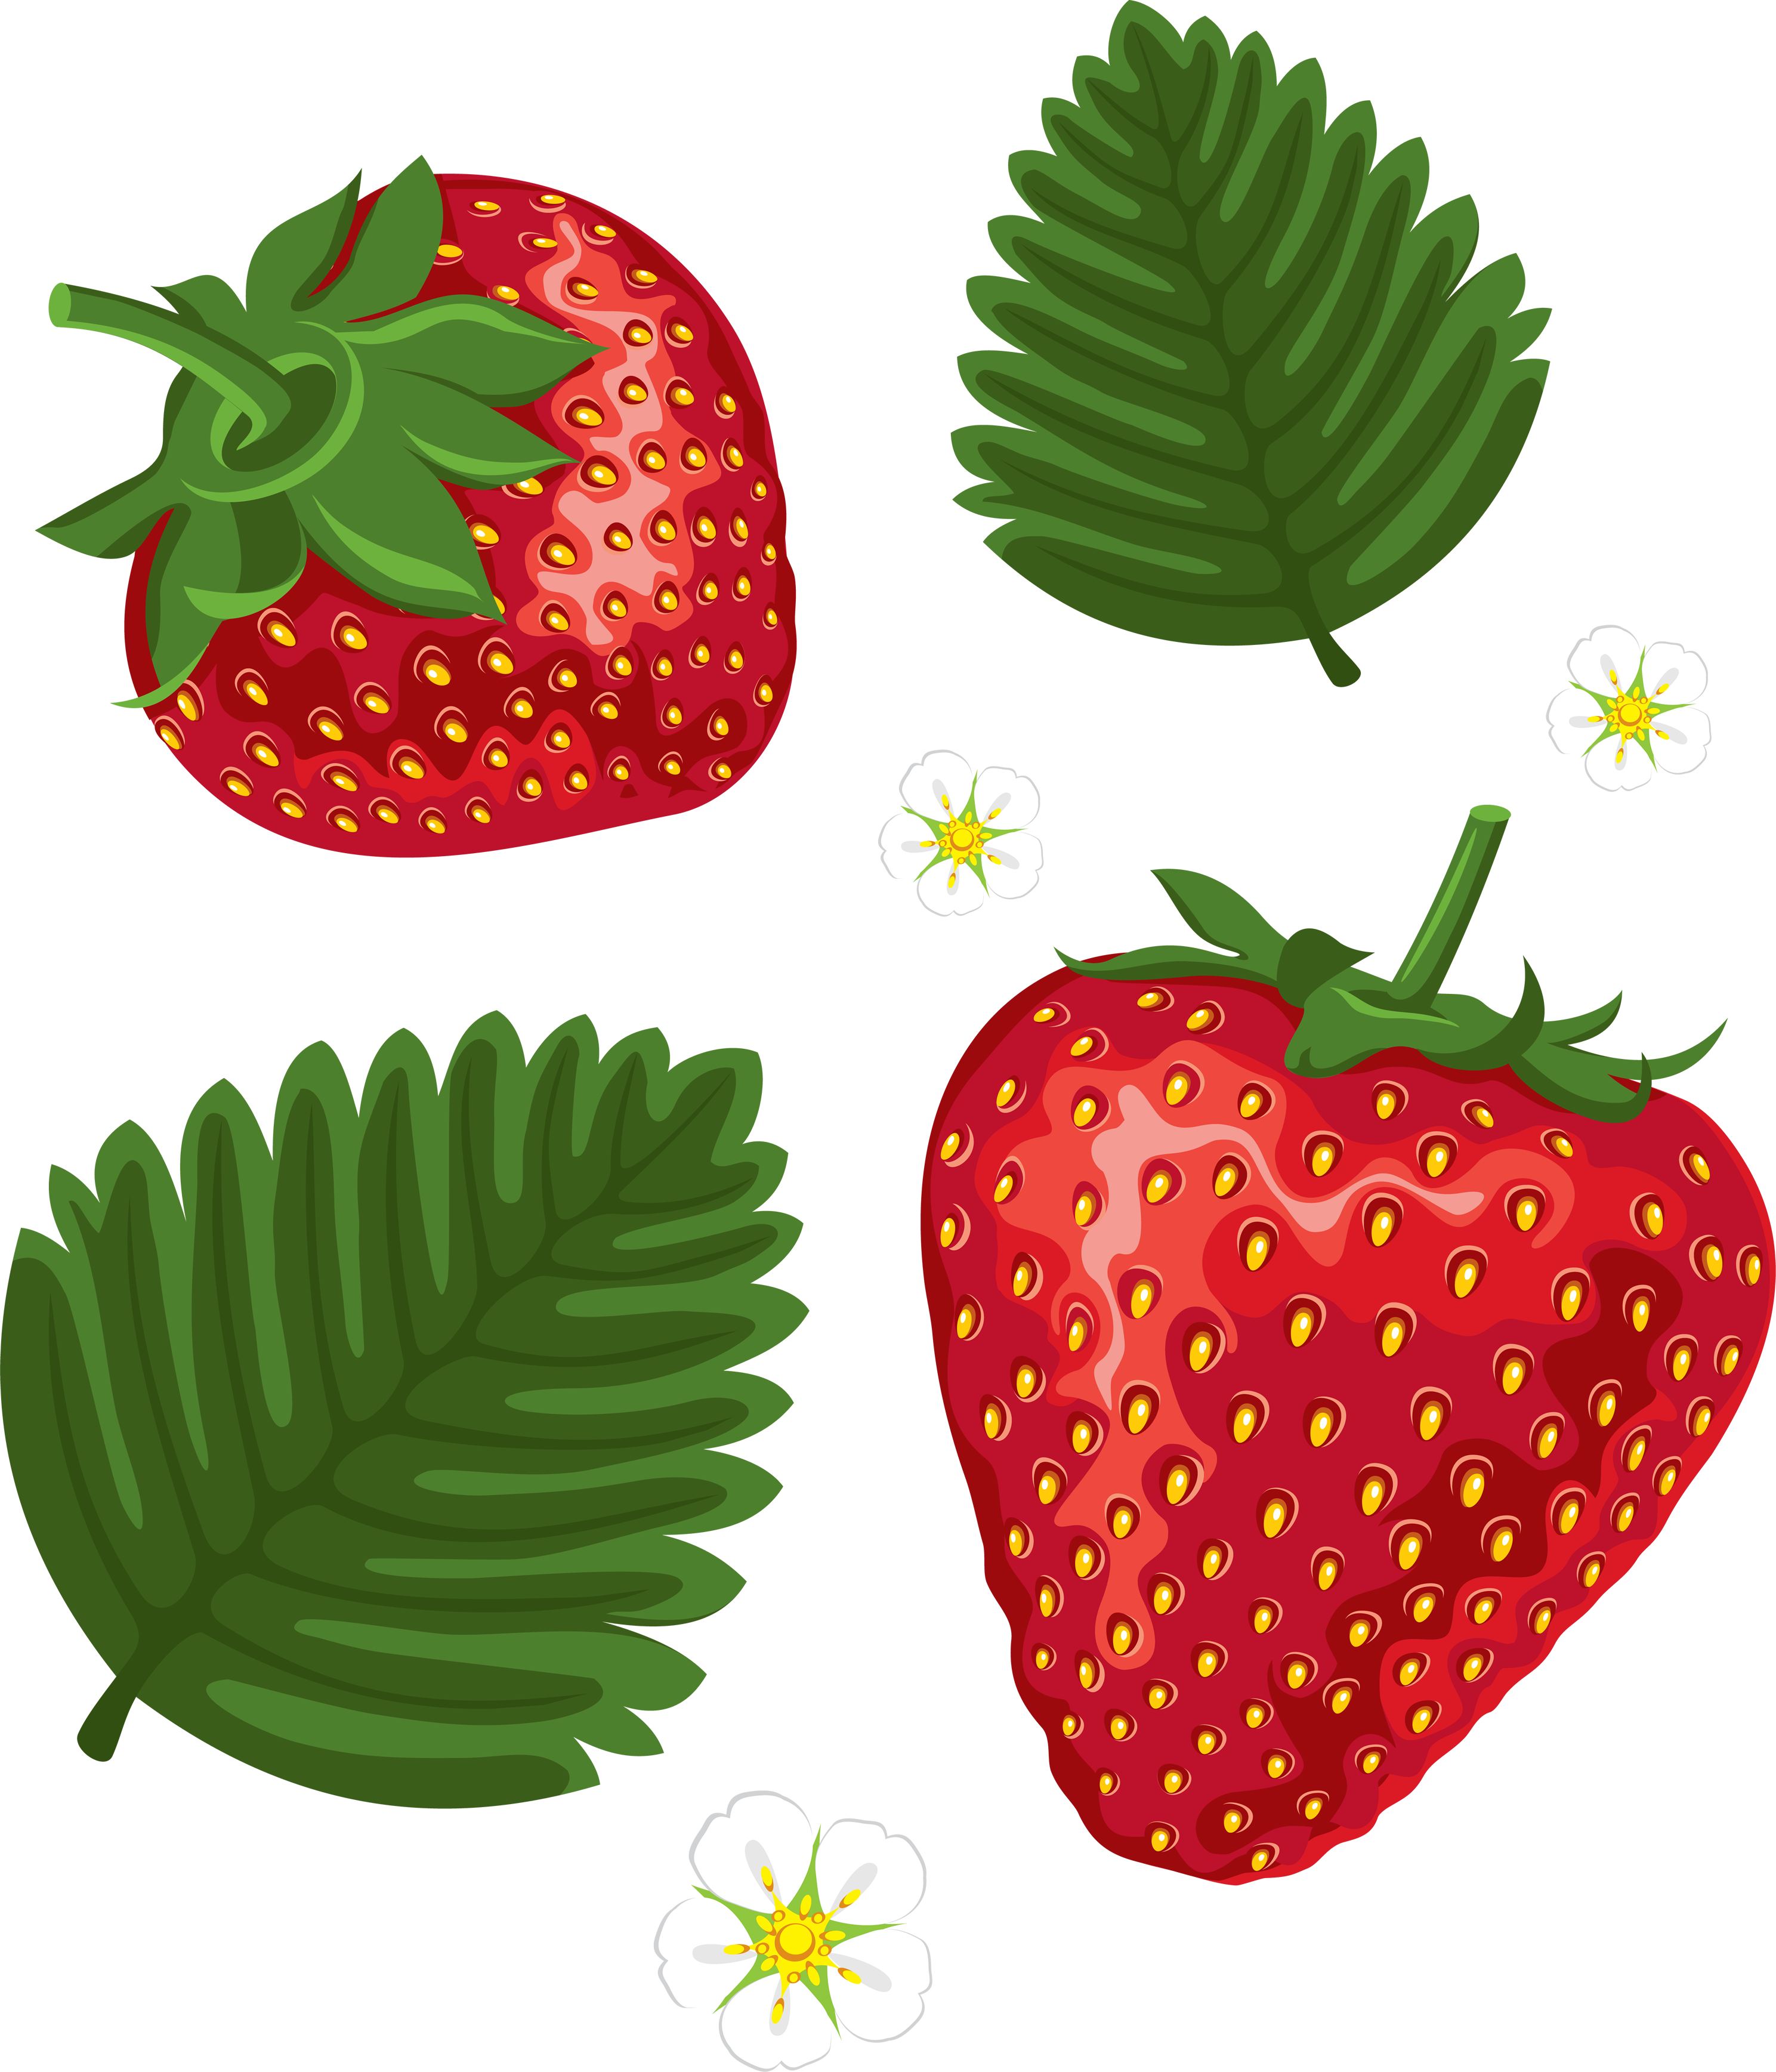 Strawberries clipart social. Strawberry transparent image pinterest